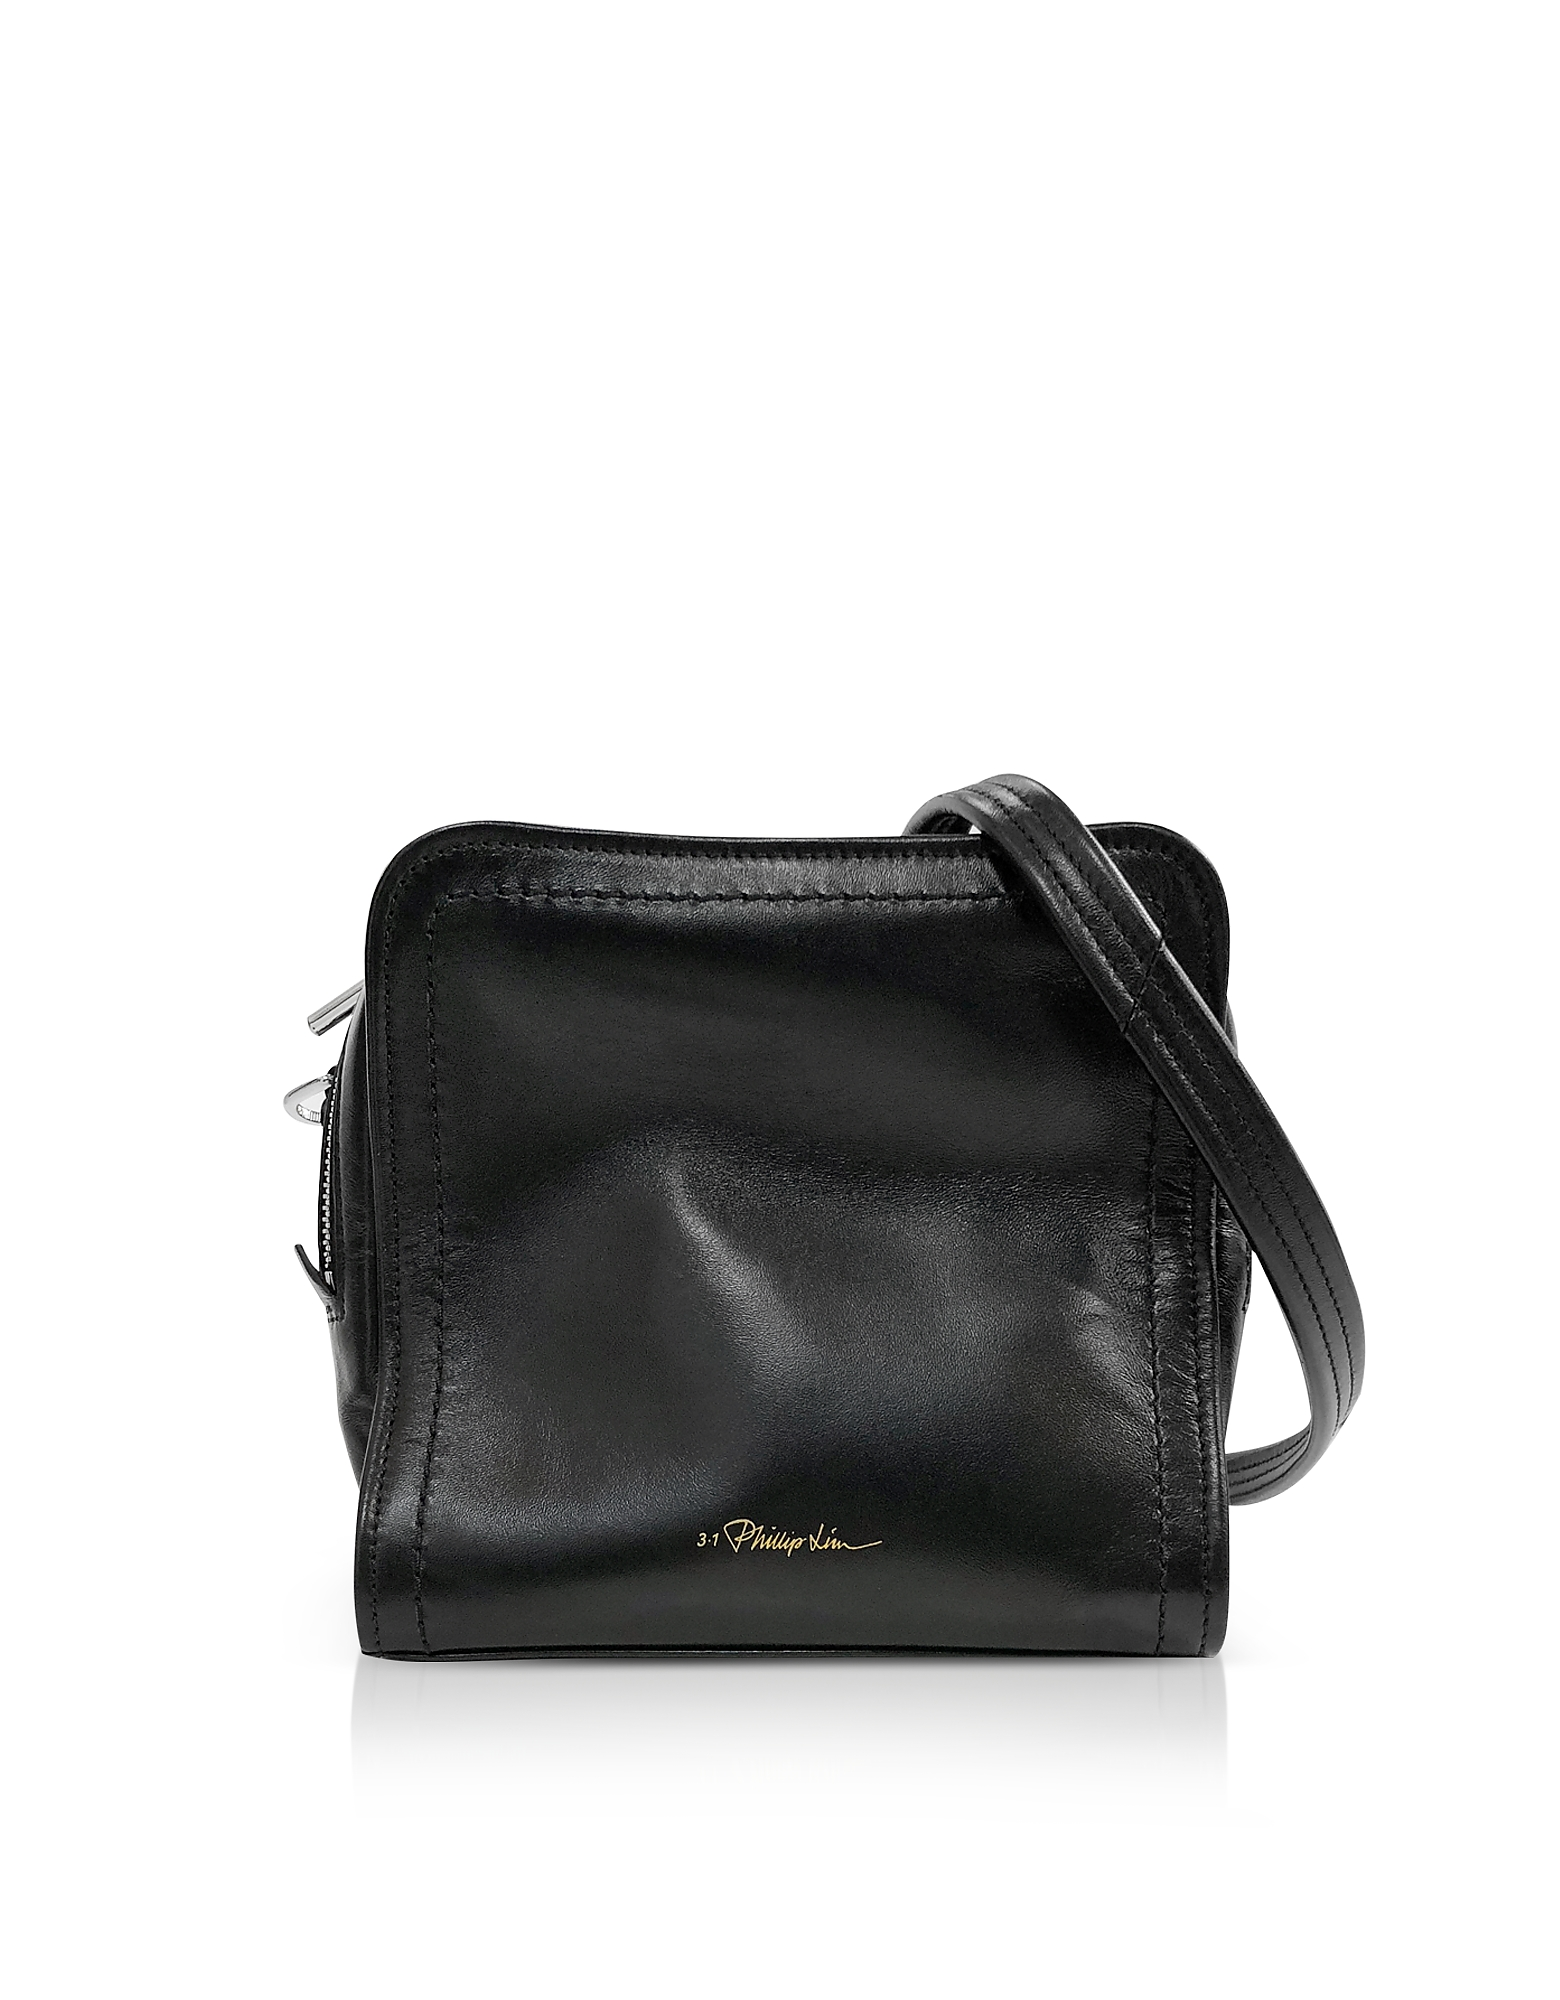 Image of 3.1 Phillip Lim Designer Handbags, Black Leather Hudson Mini Square Crossbody Bag